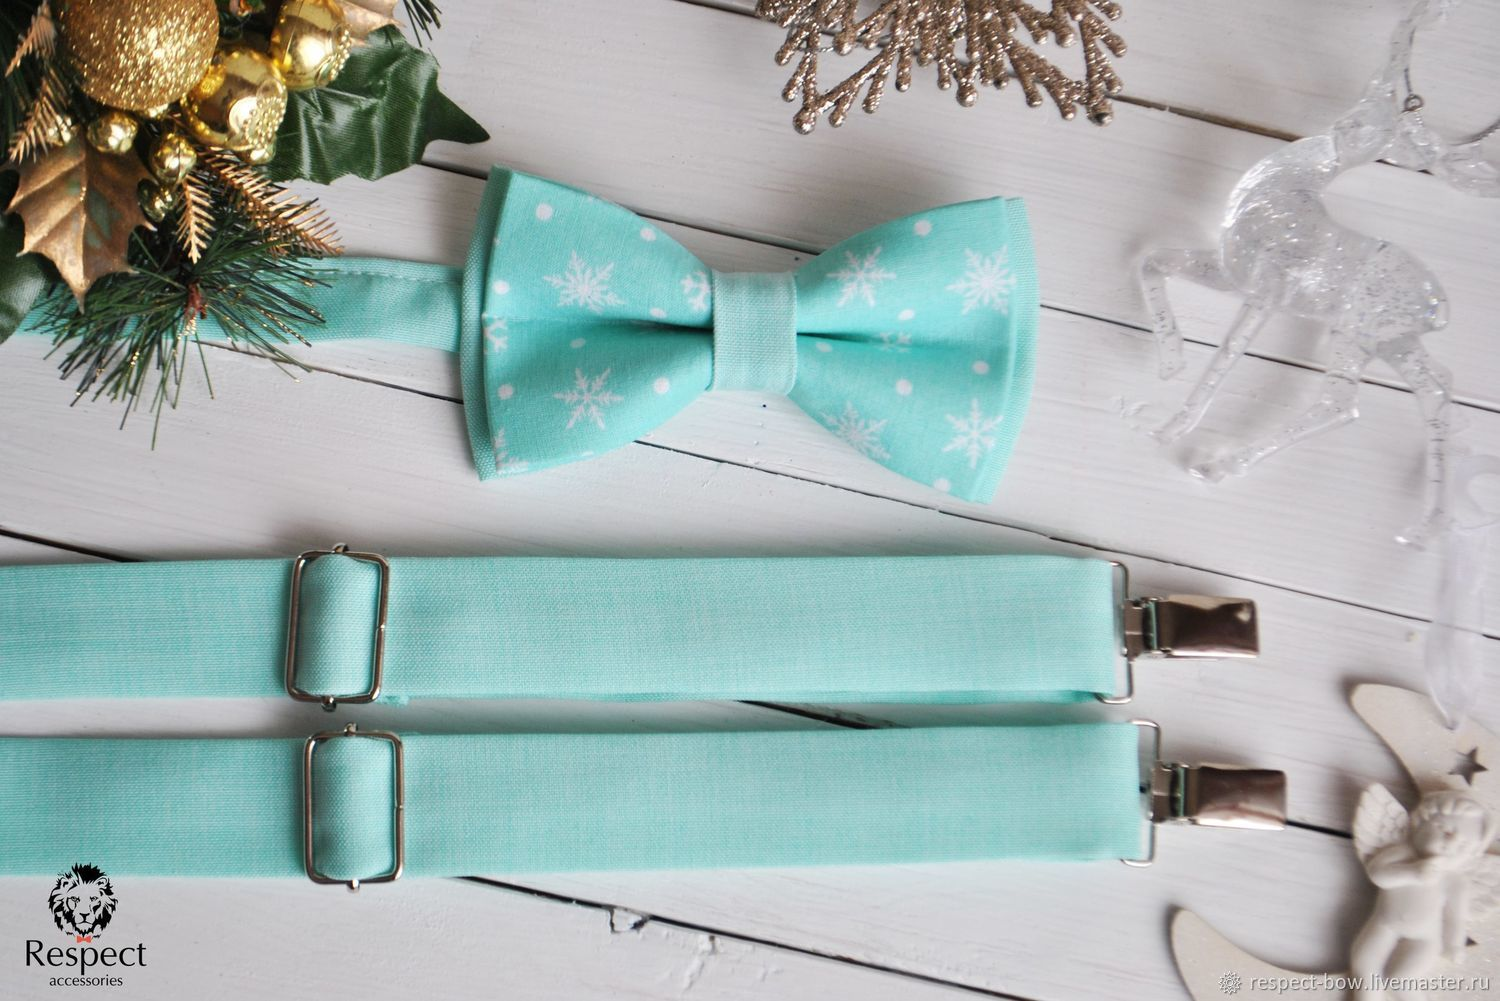 Mint bow tie for the New year complete with men's suspenders for pants mint color to buy in Moscow with delivery to any city of Russia and the world. A great gift for a friend or boyfriend for the New